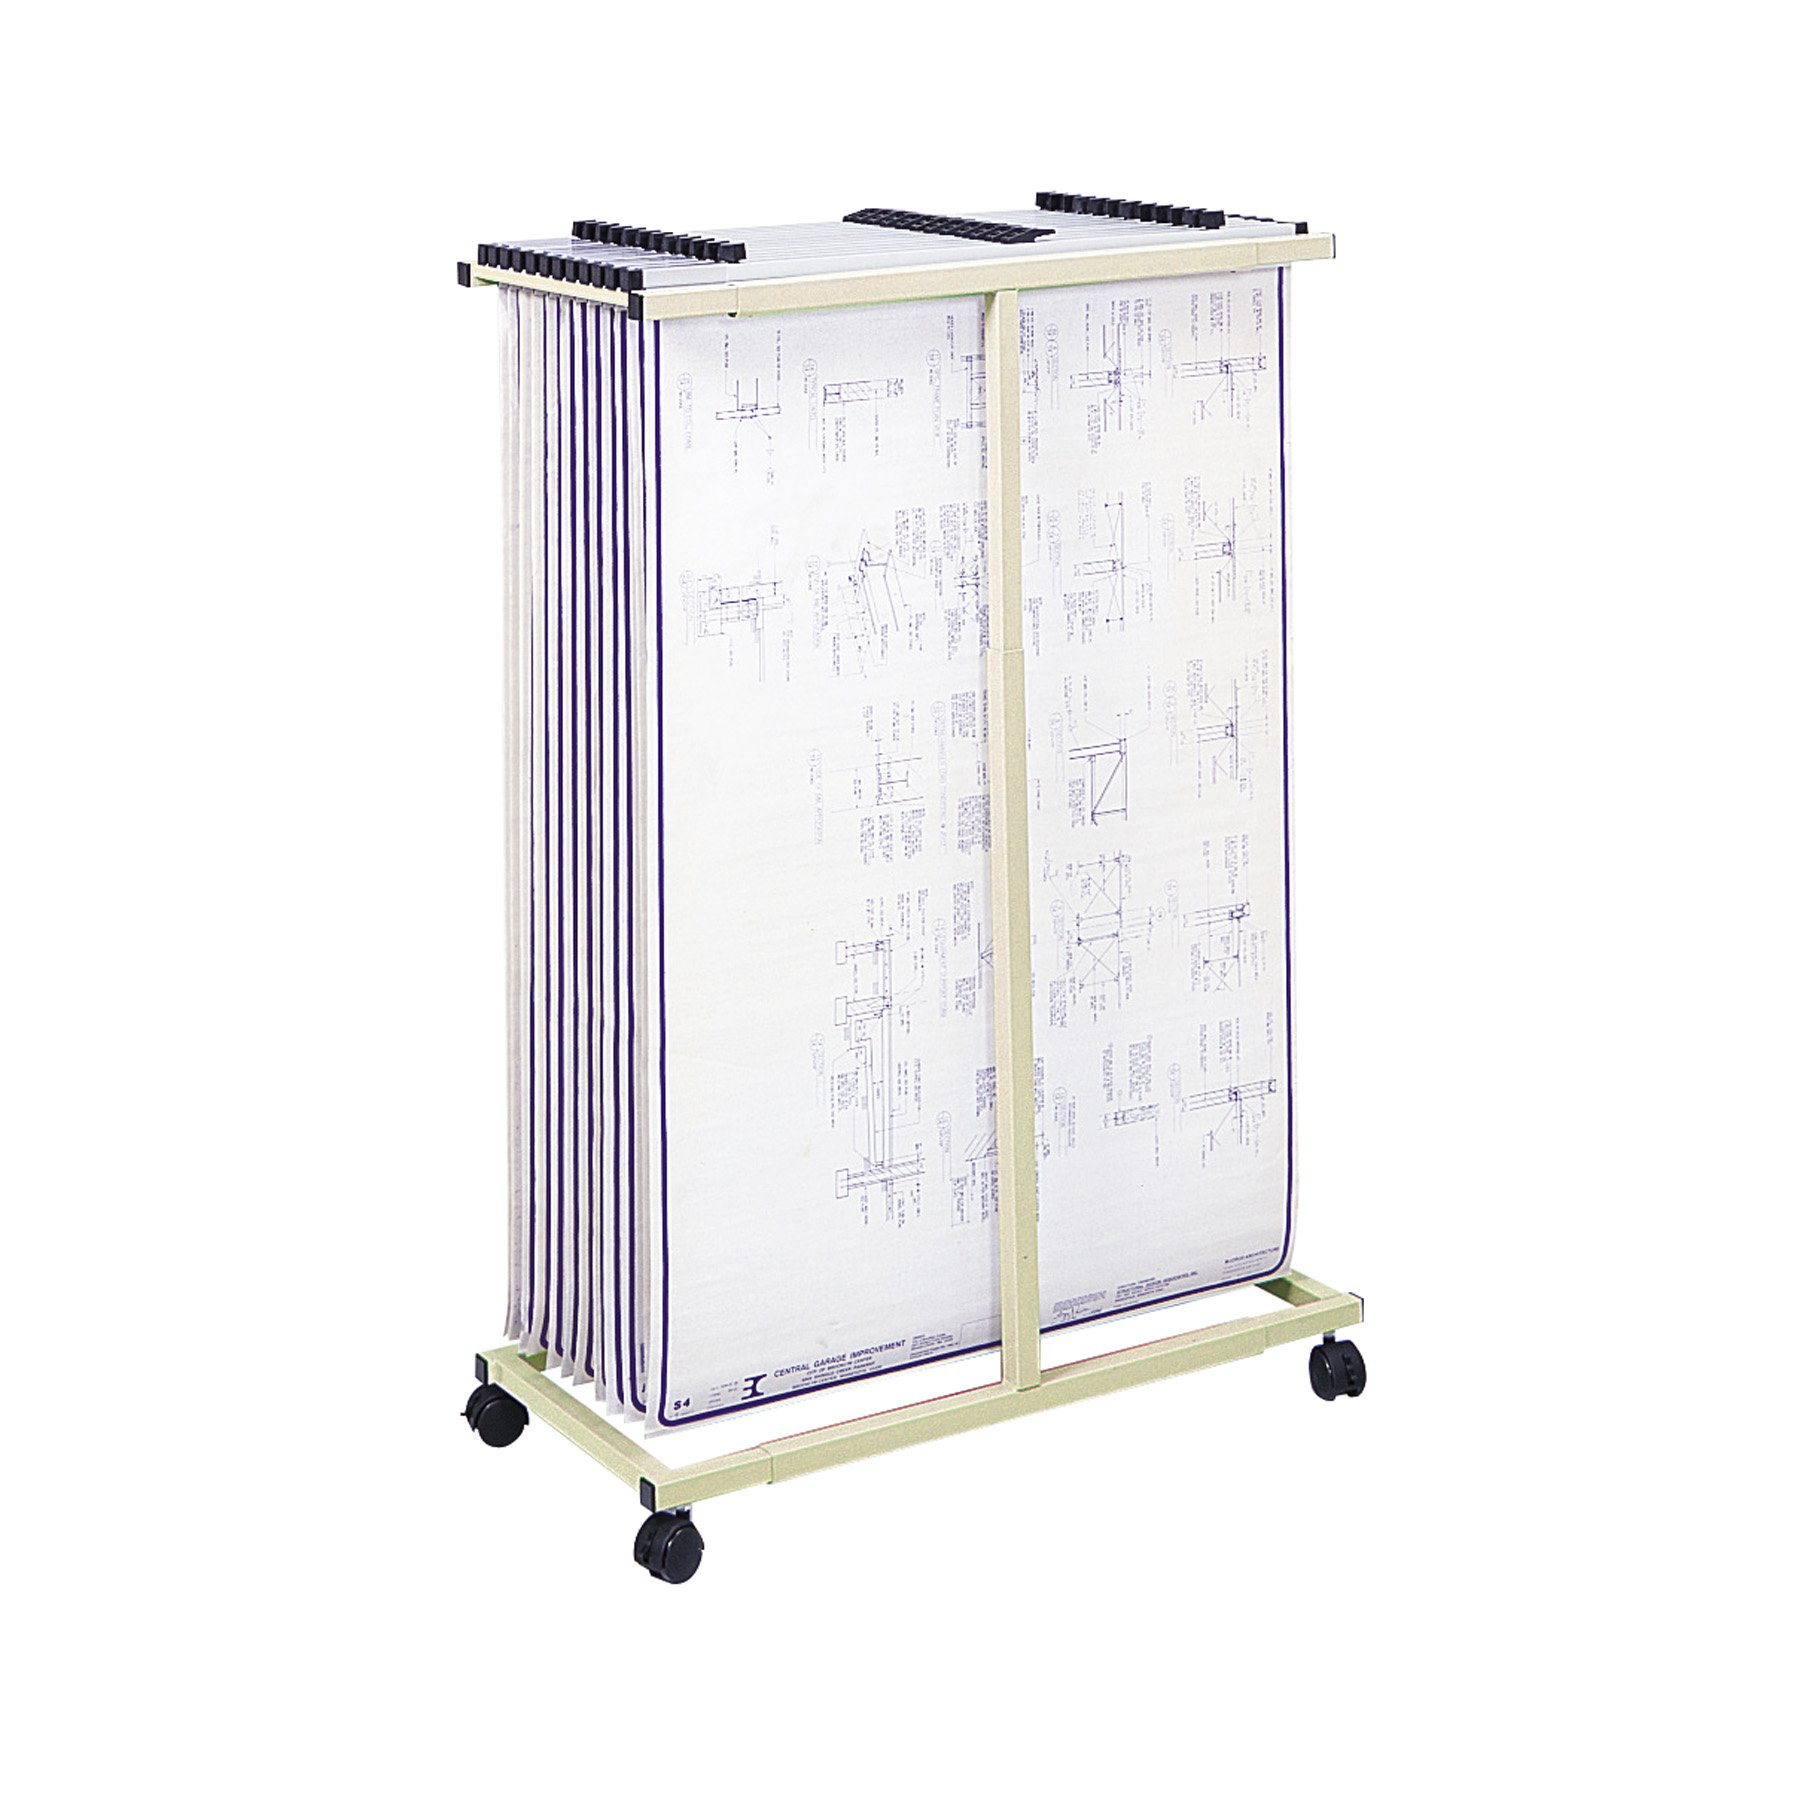 Safco Products 5059 Mobile Vertical File, Tropic Sand